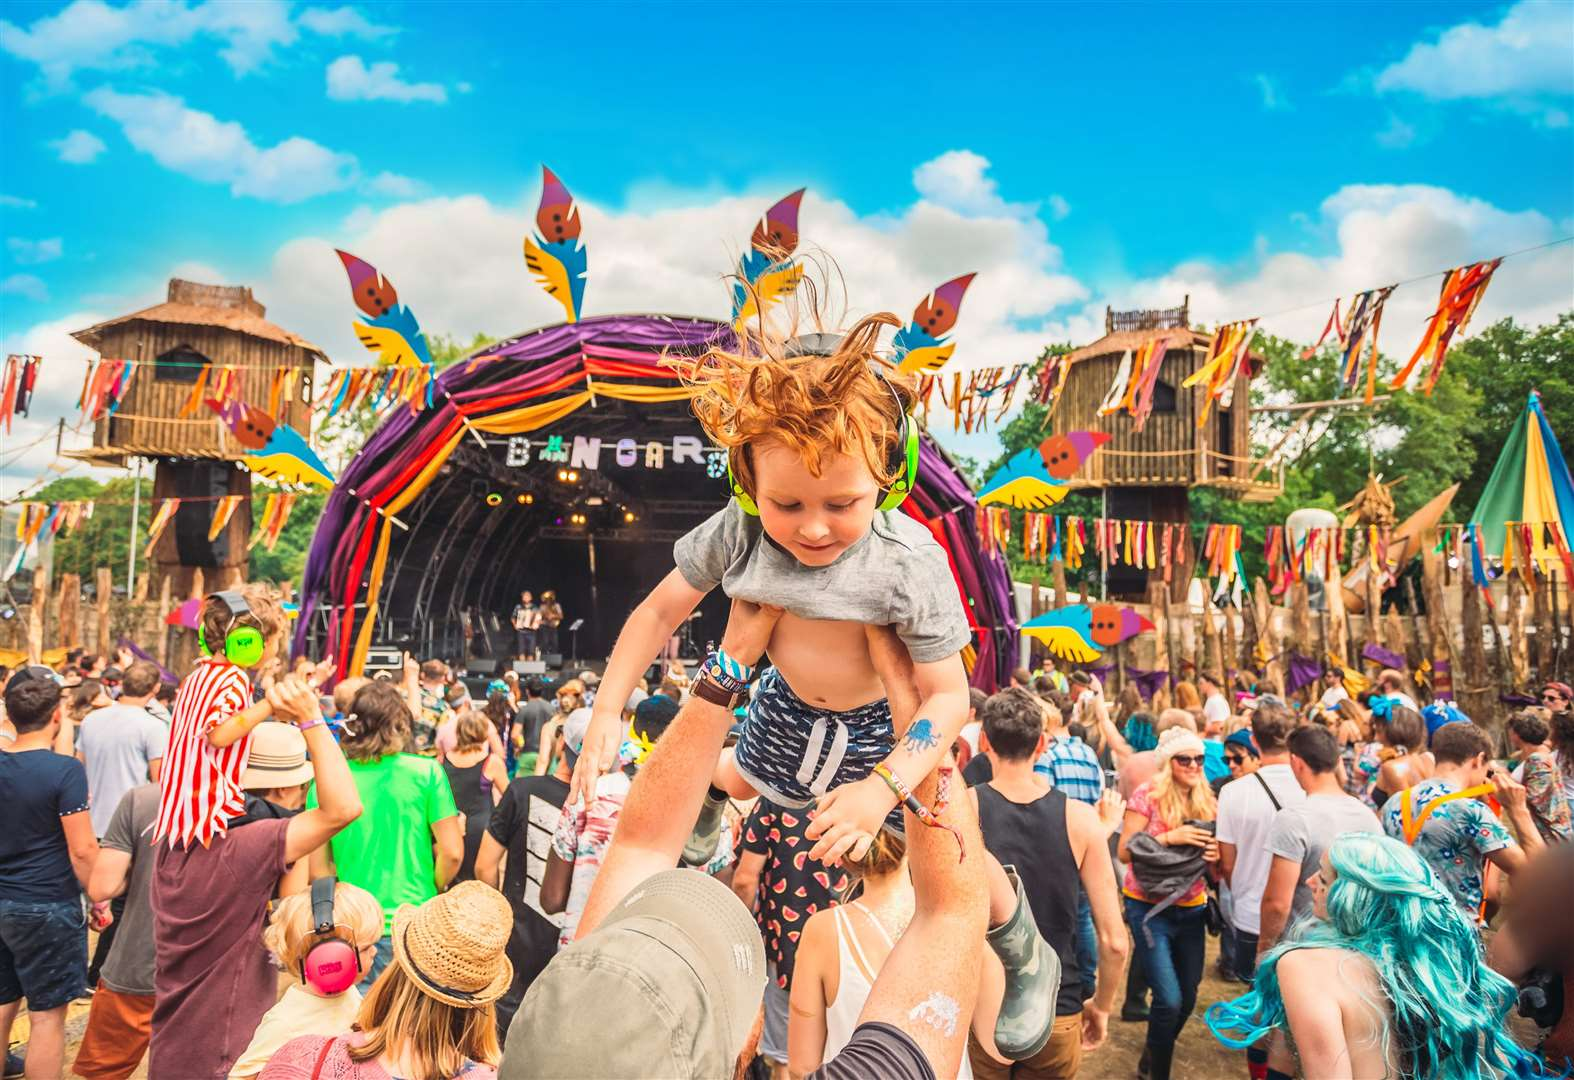 Fancy facing a festival with the family?